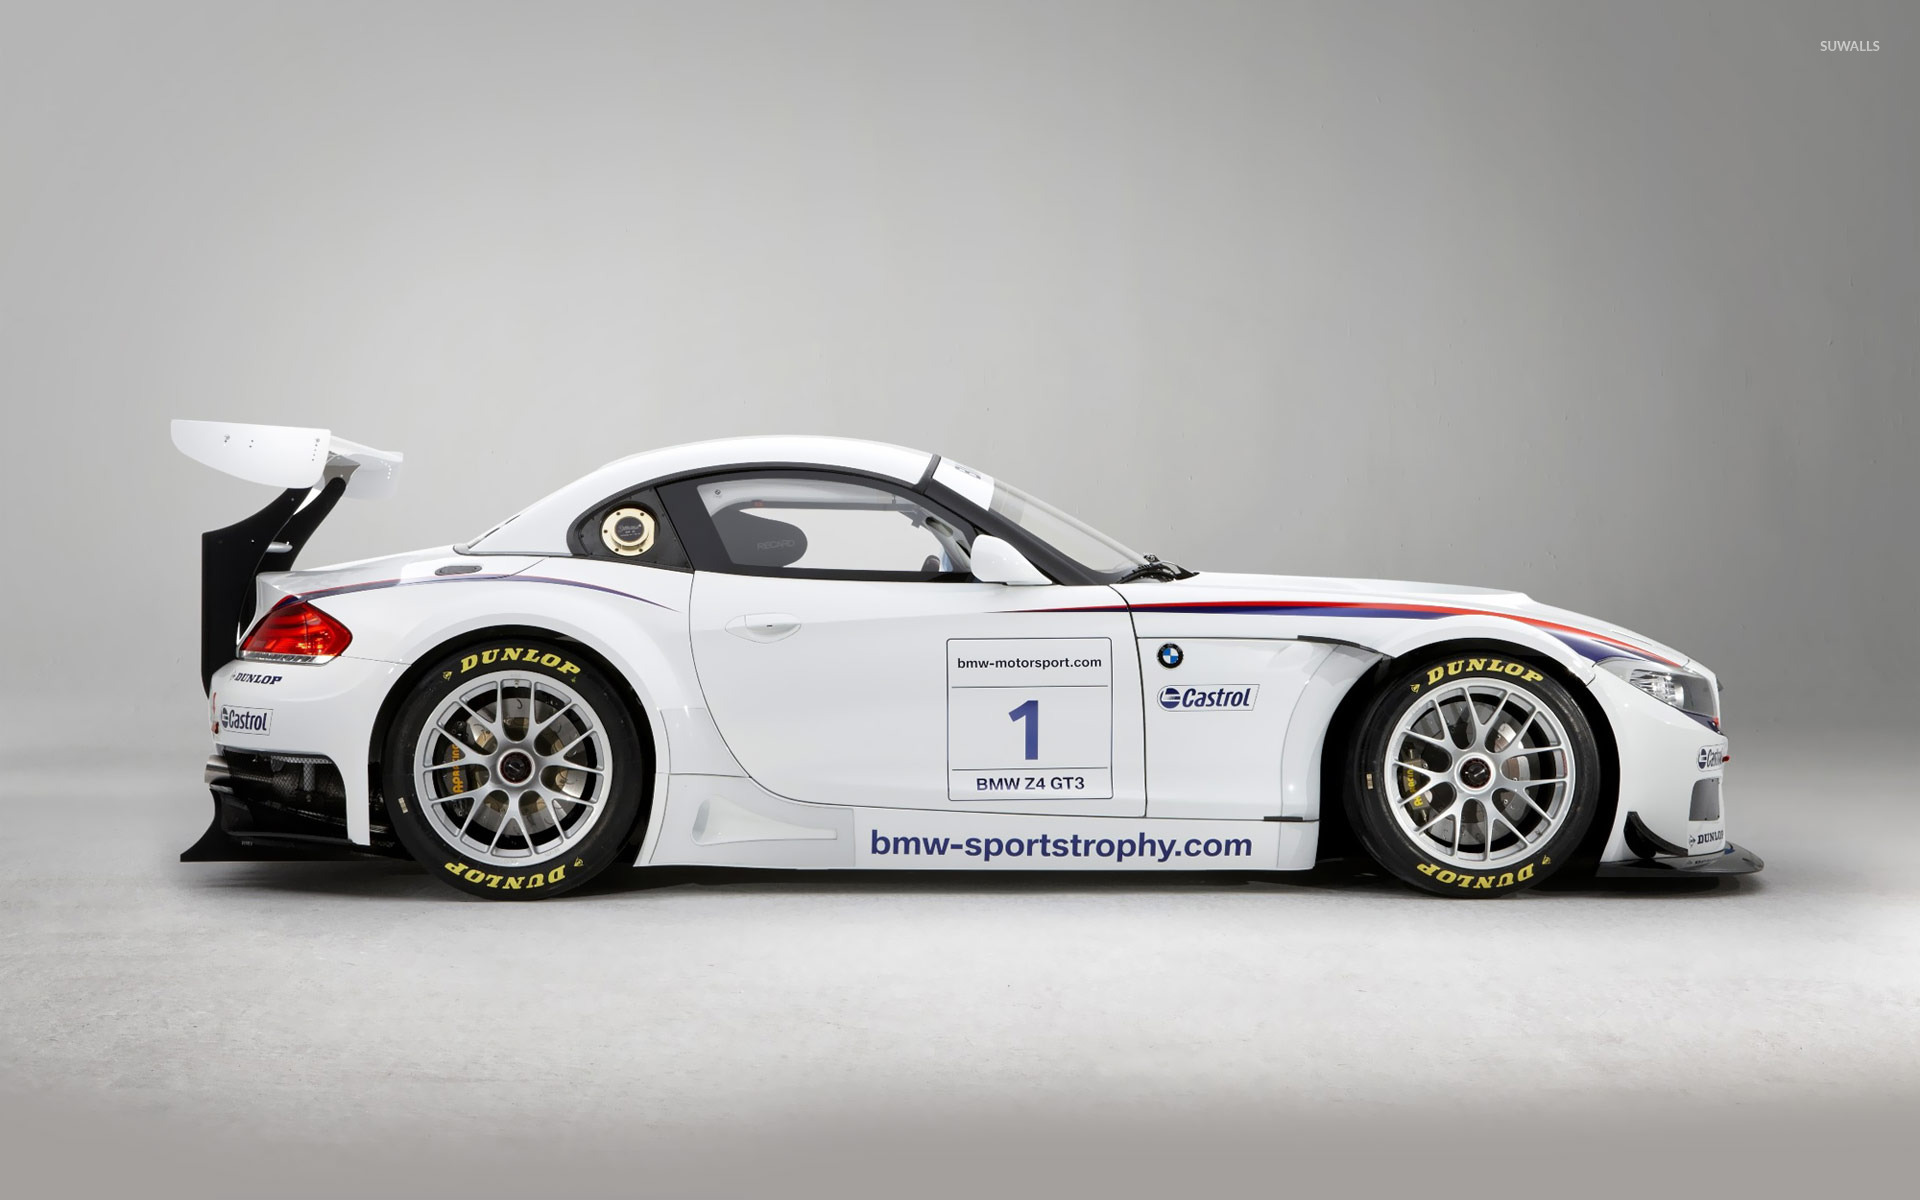 bmw z4 gt3 wallpapers - photo #17